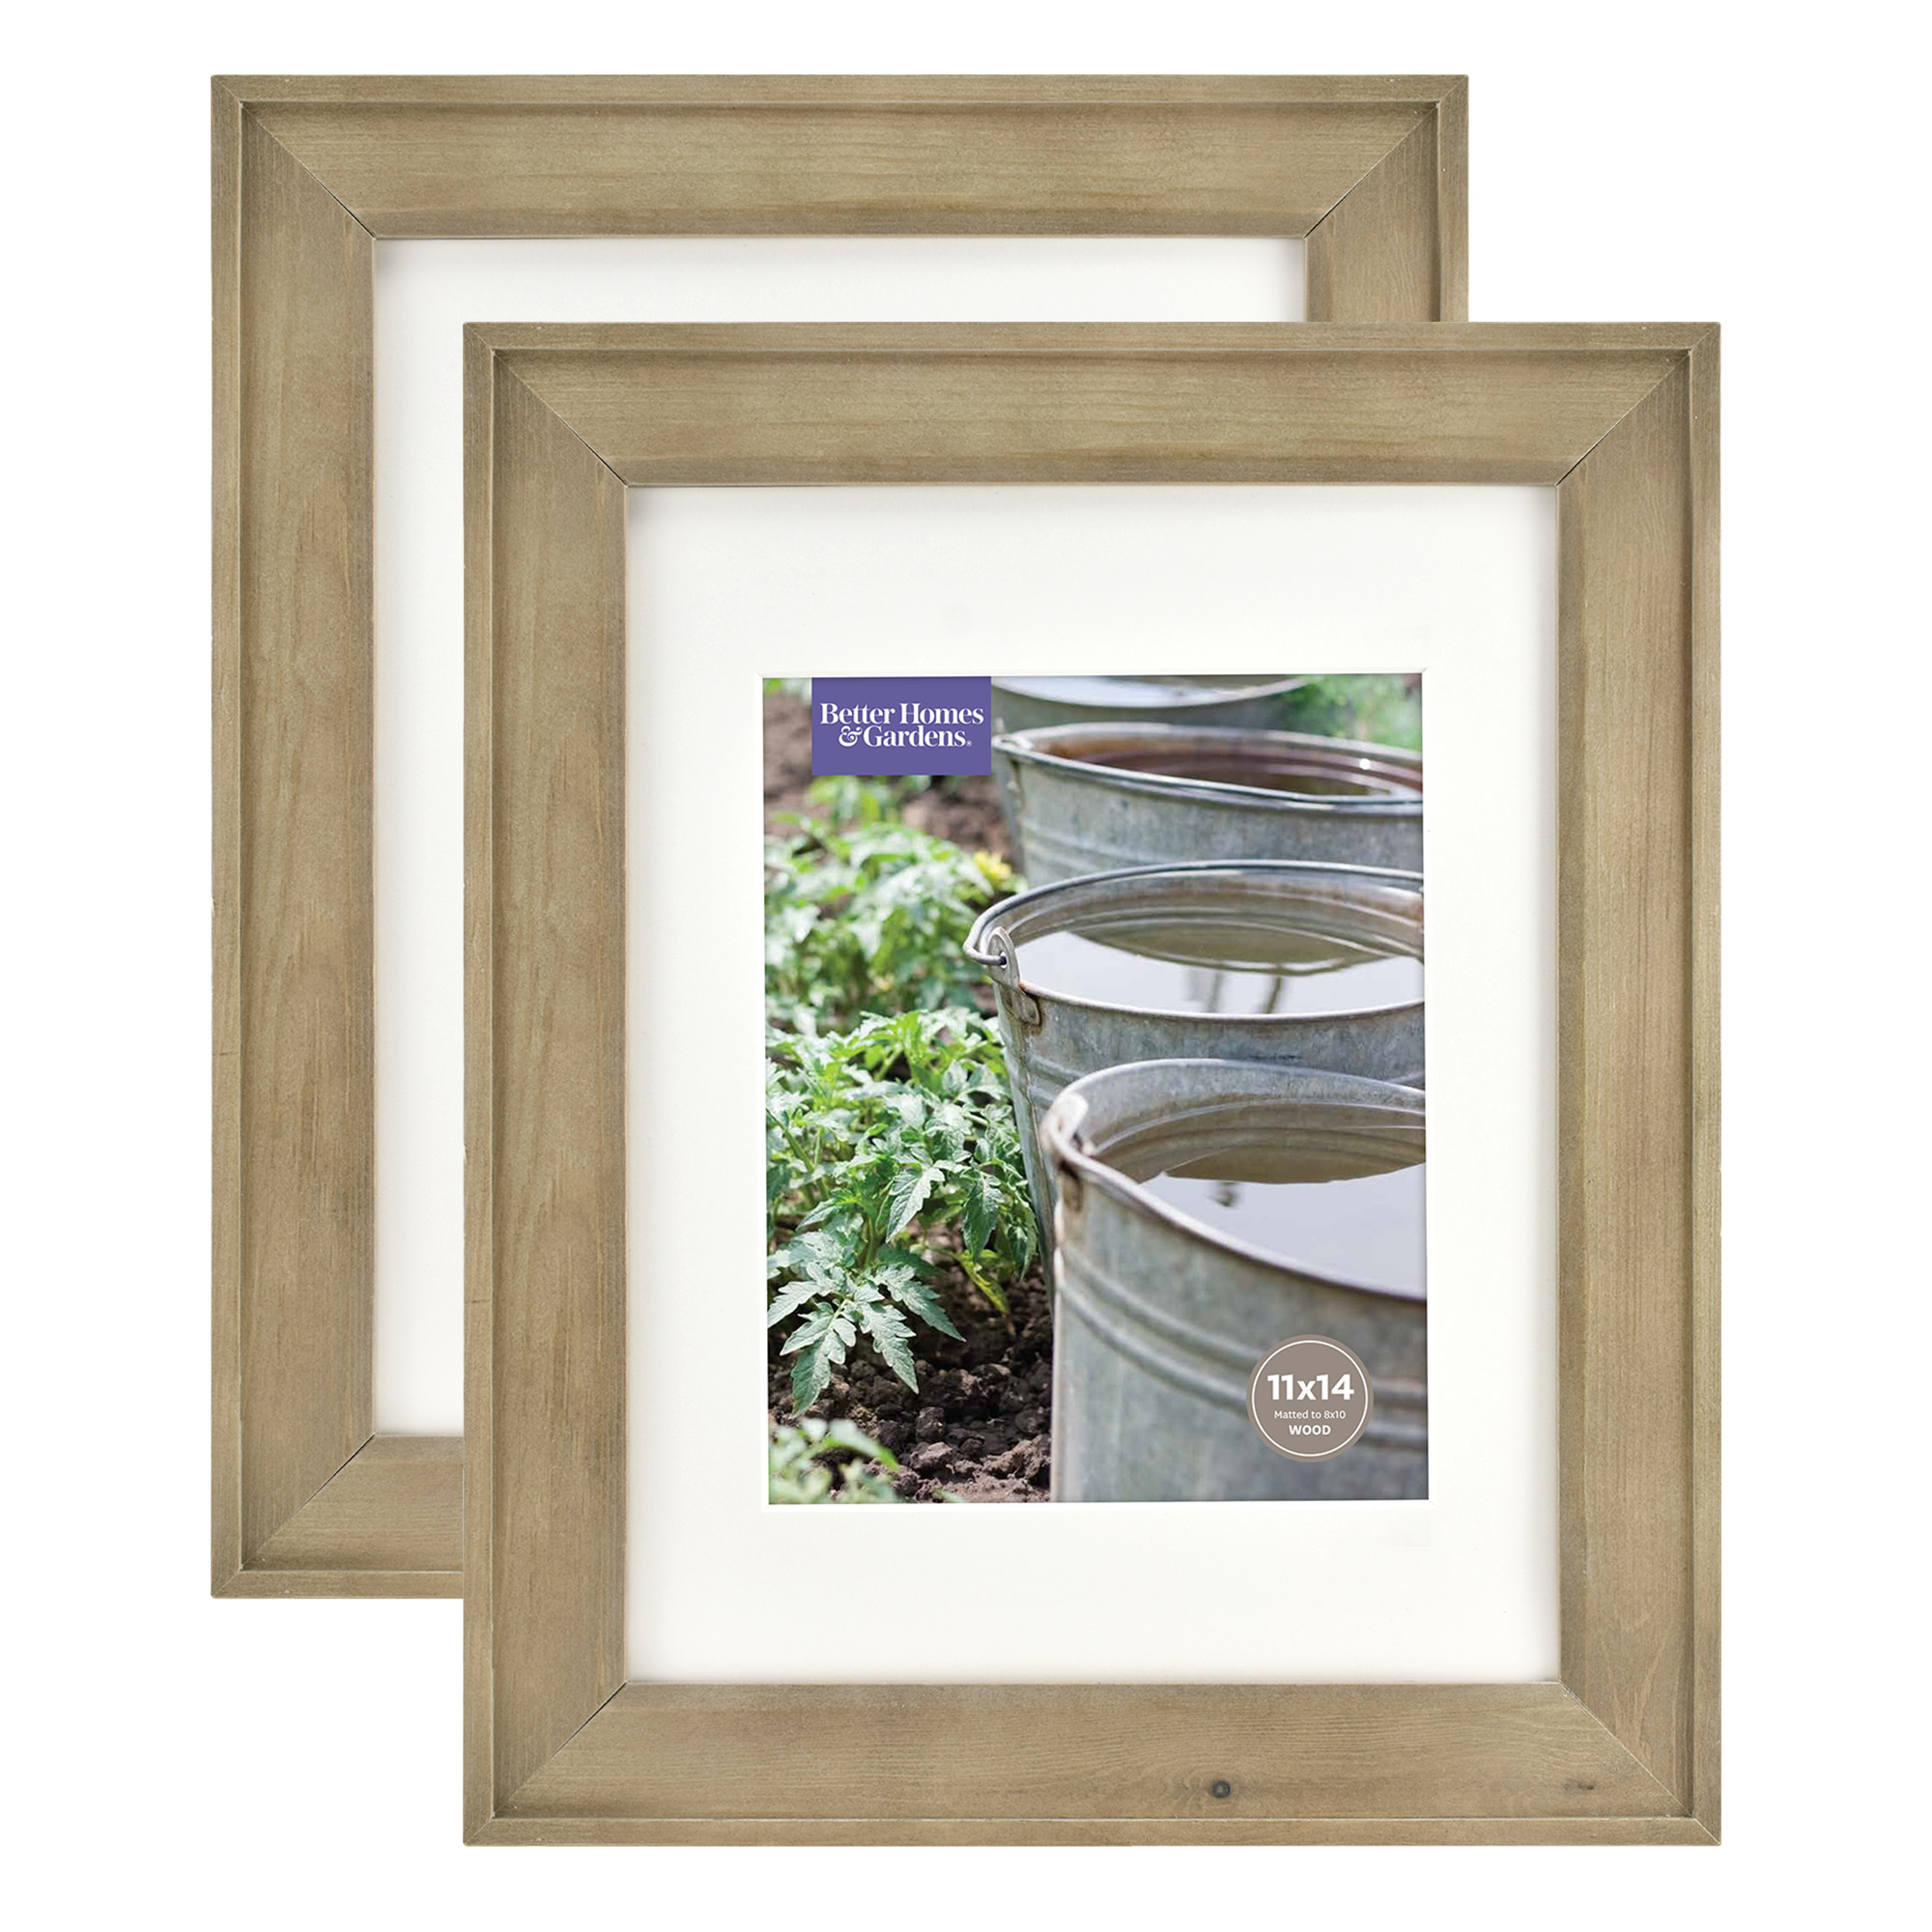 Better Homes & Gardens 11x14/8x10 Rustic Wood Picture Frame, 2pk ...